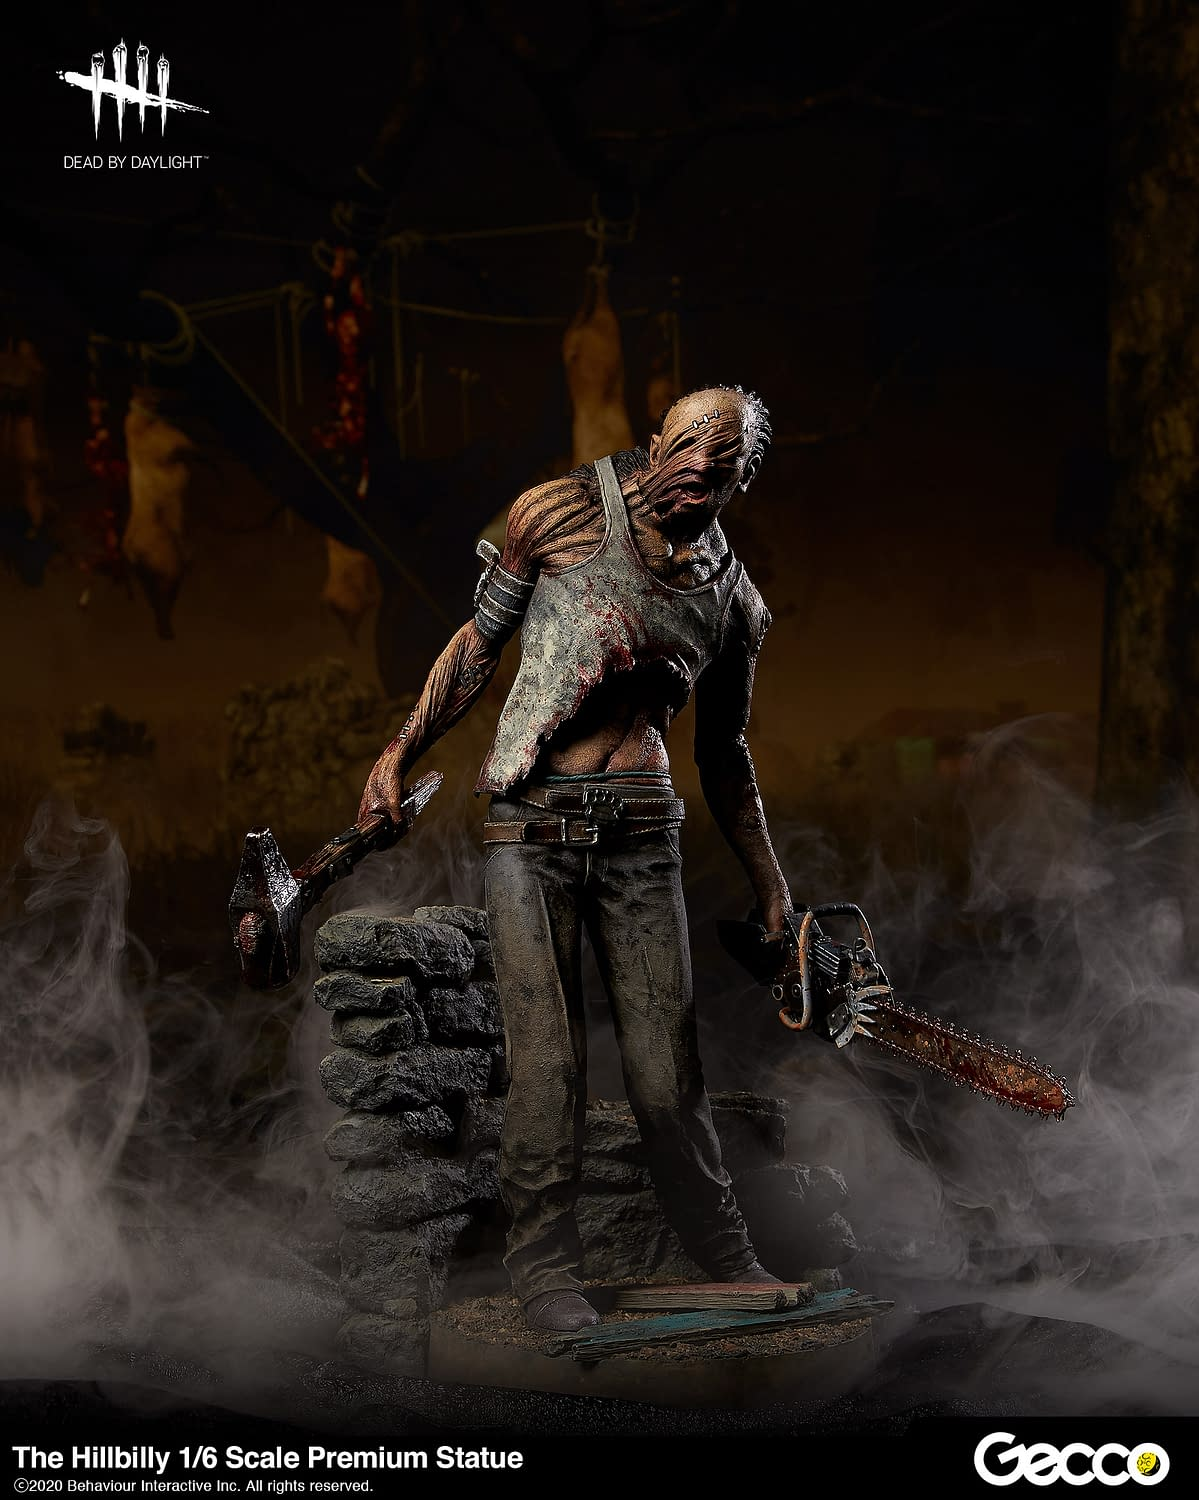 Gecco-Dead-by-Daylight-Hillbilly-Statue-001